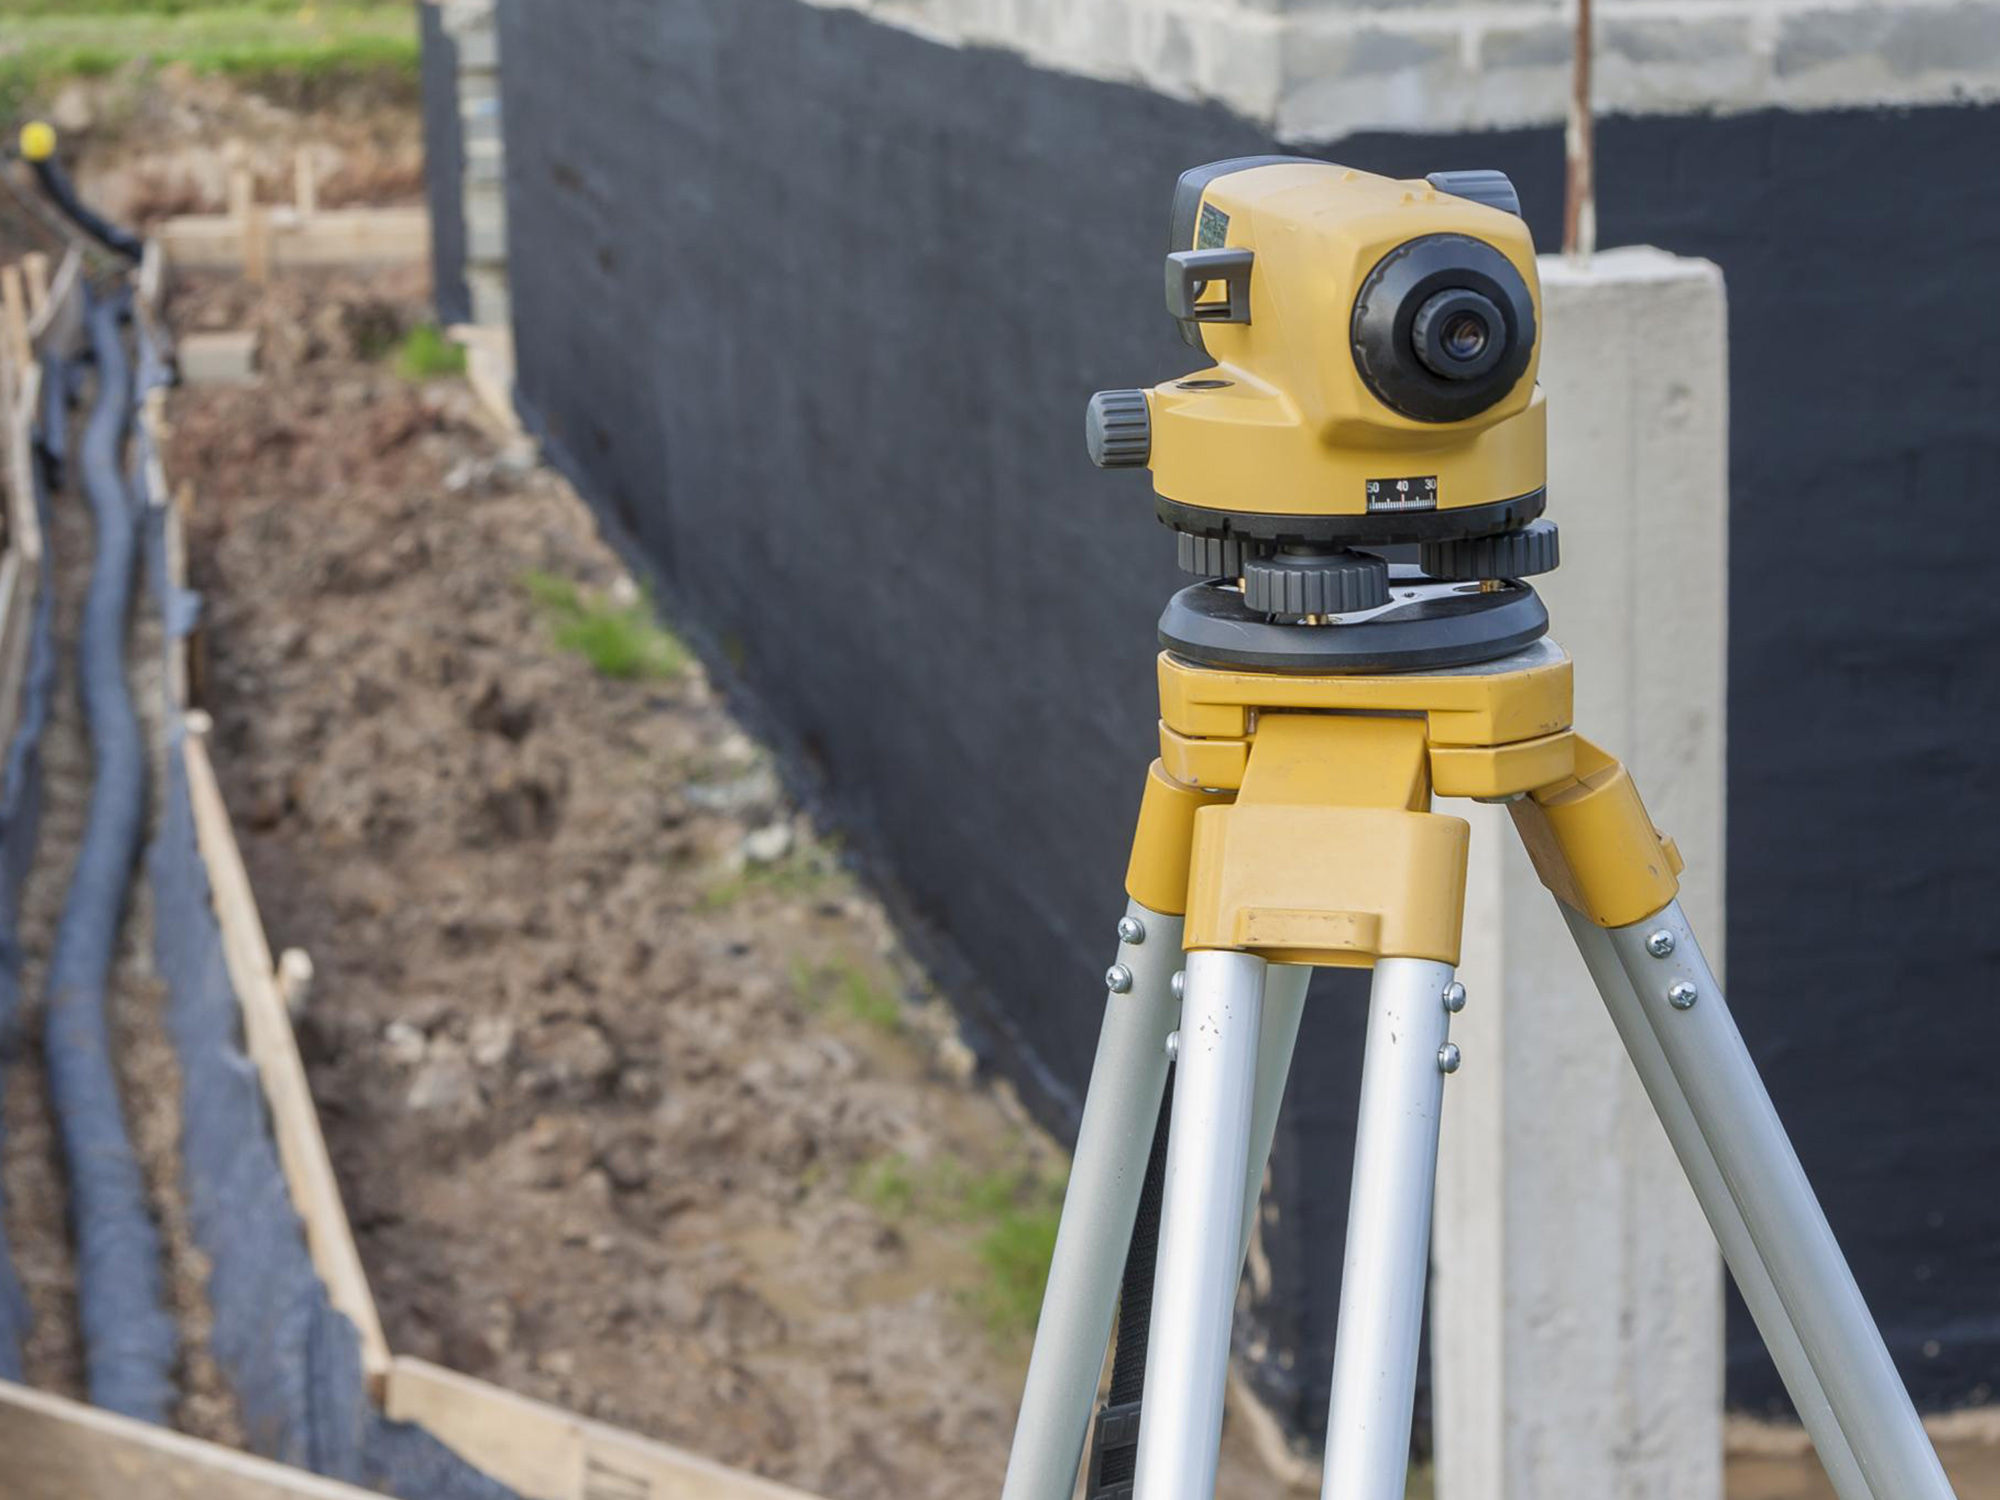 a land measuring device